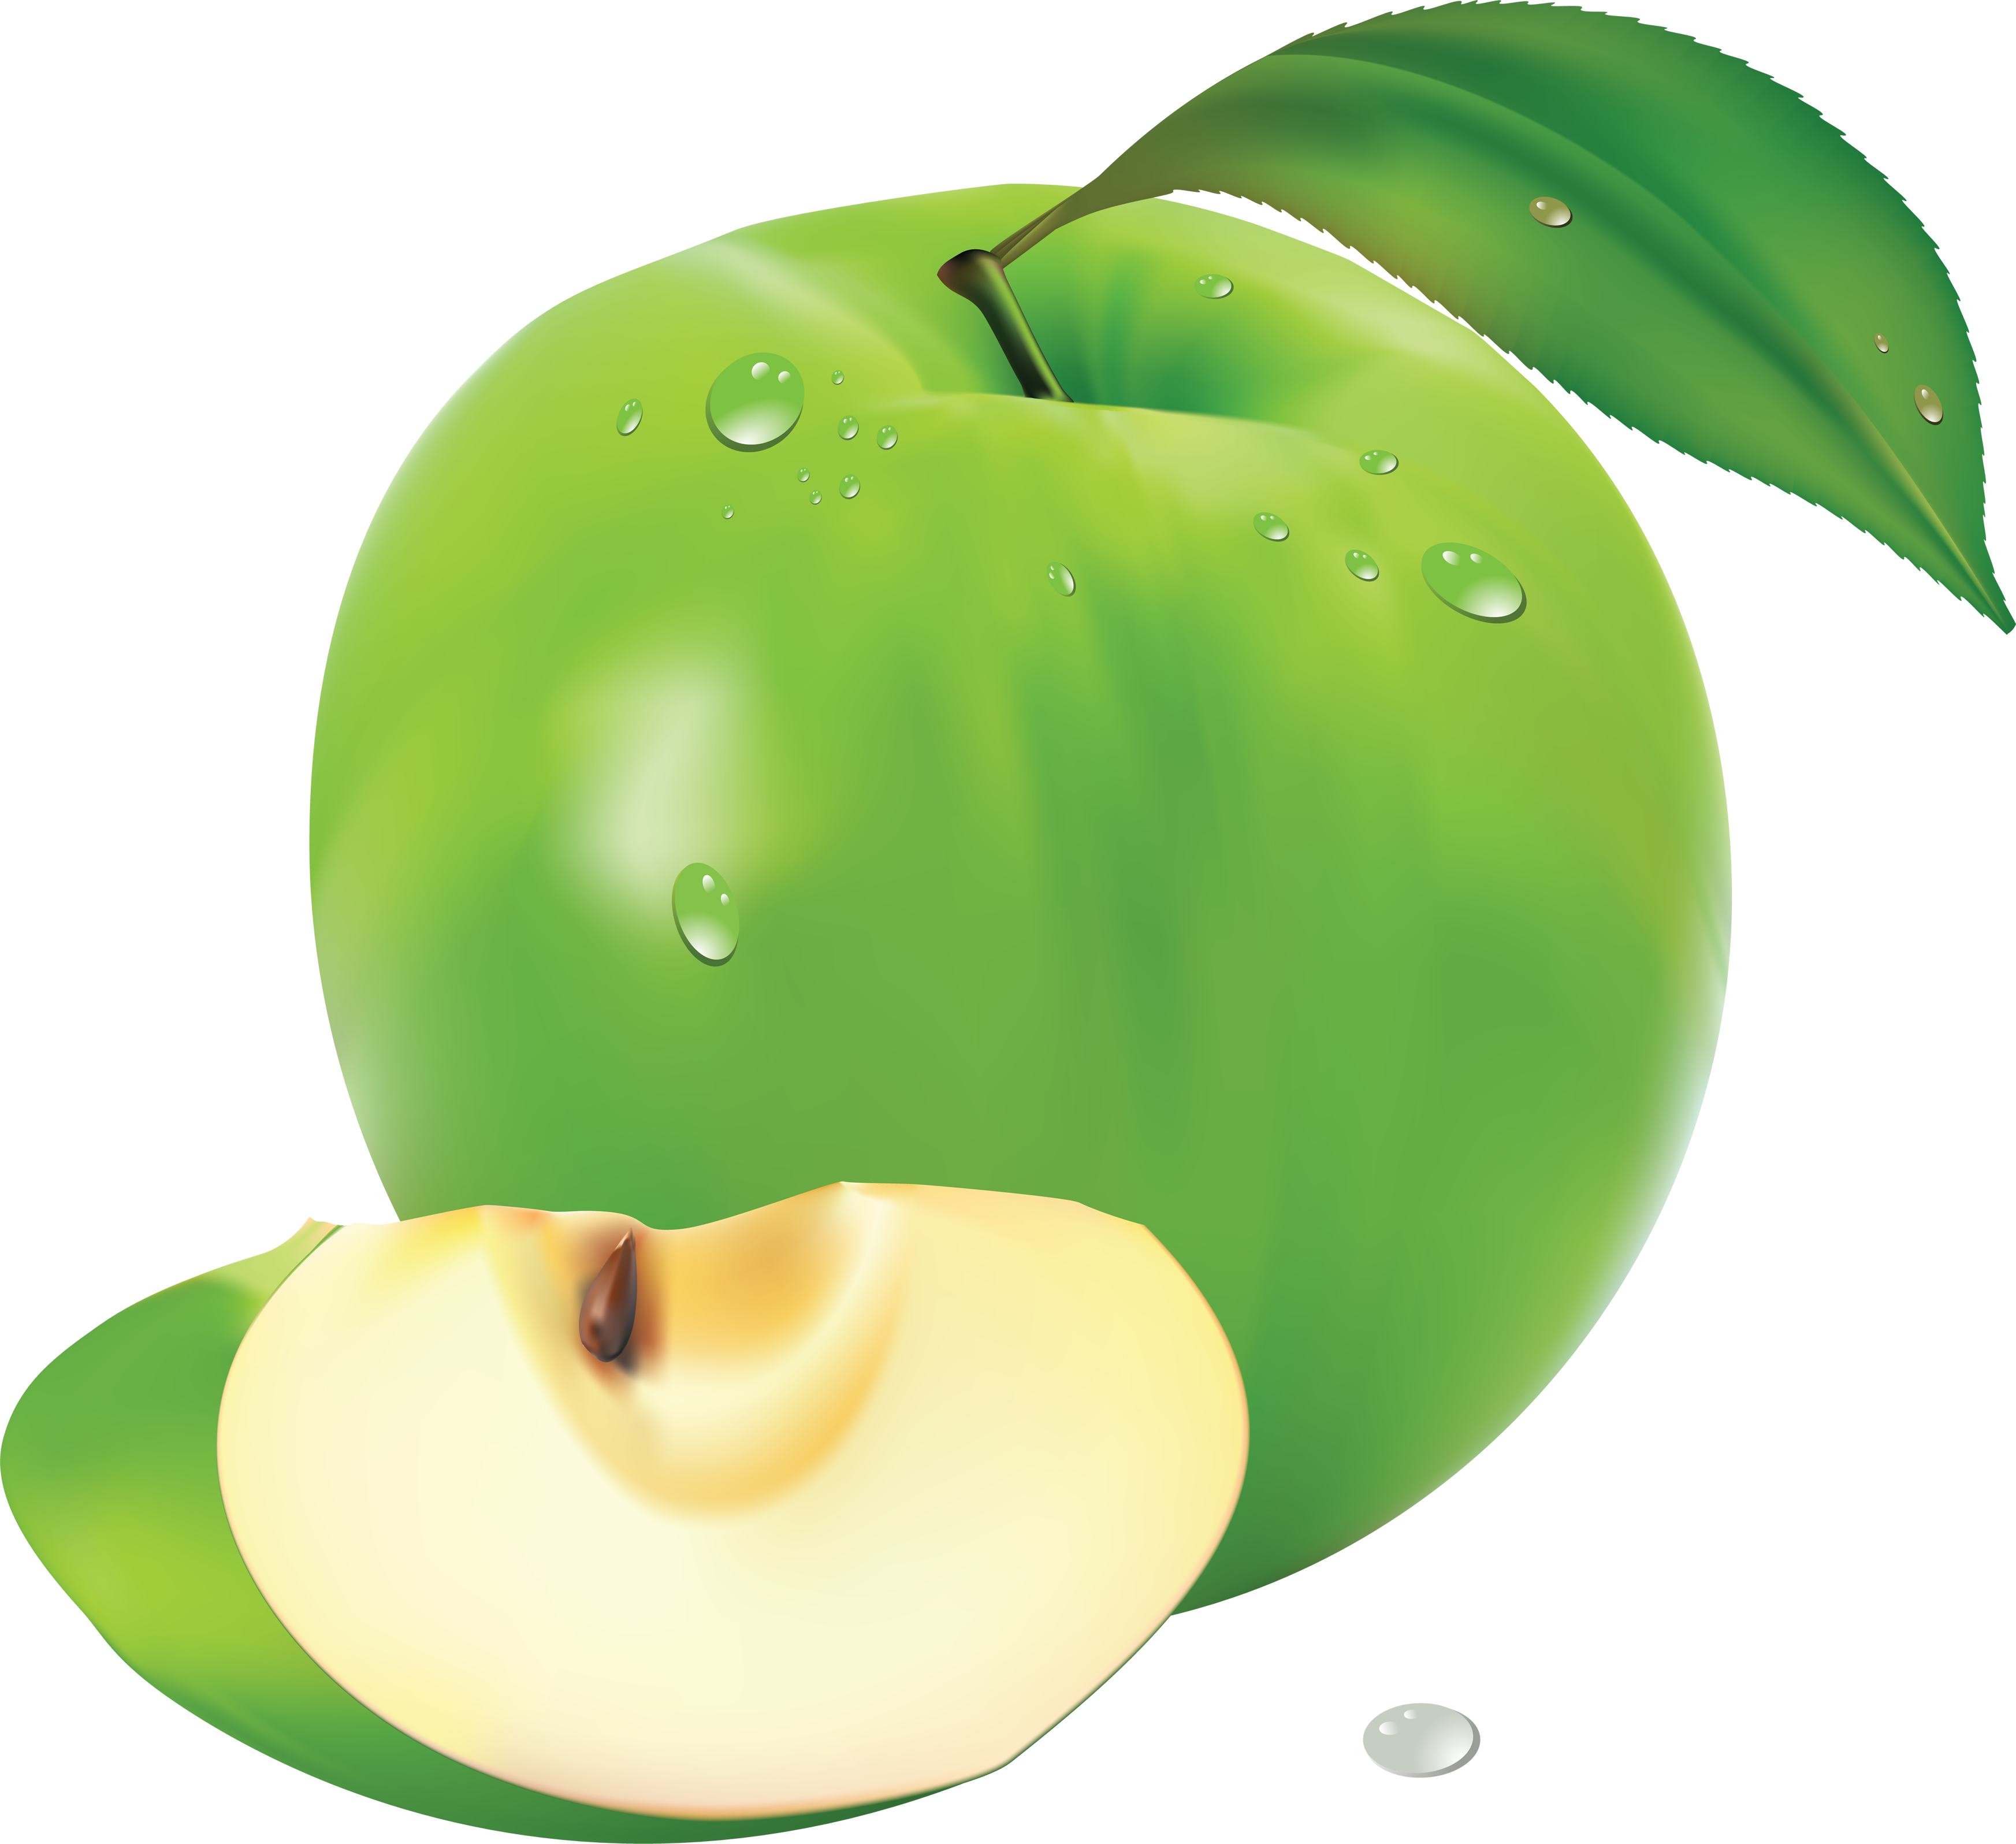 Green apple vector png. Images free download